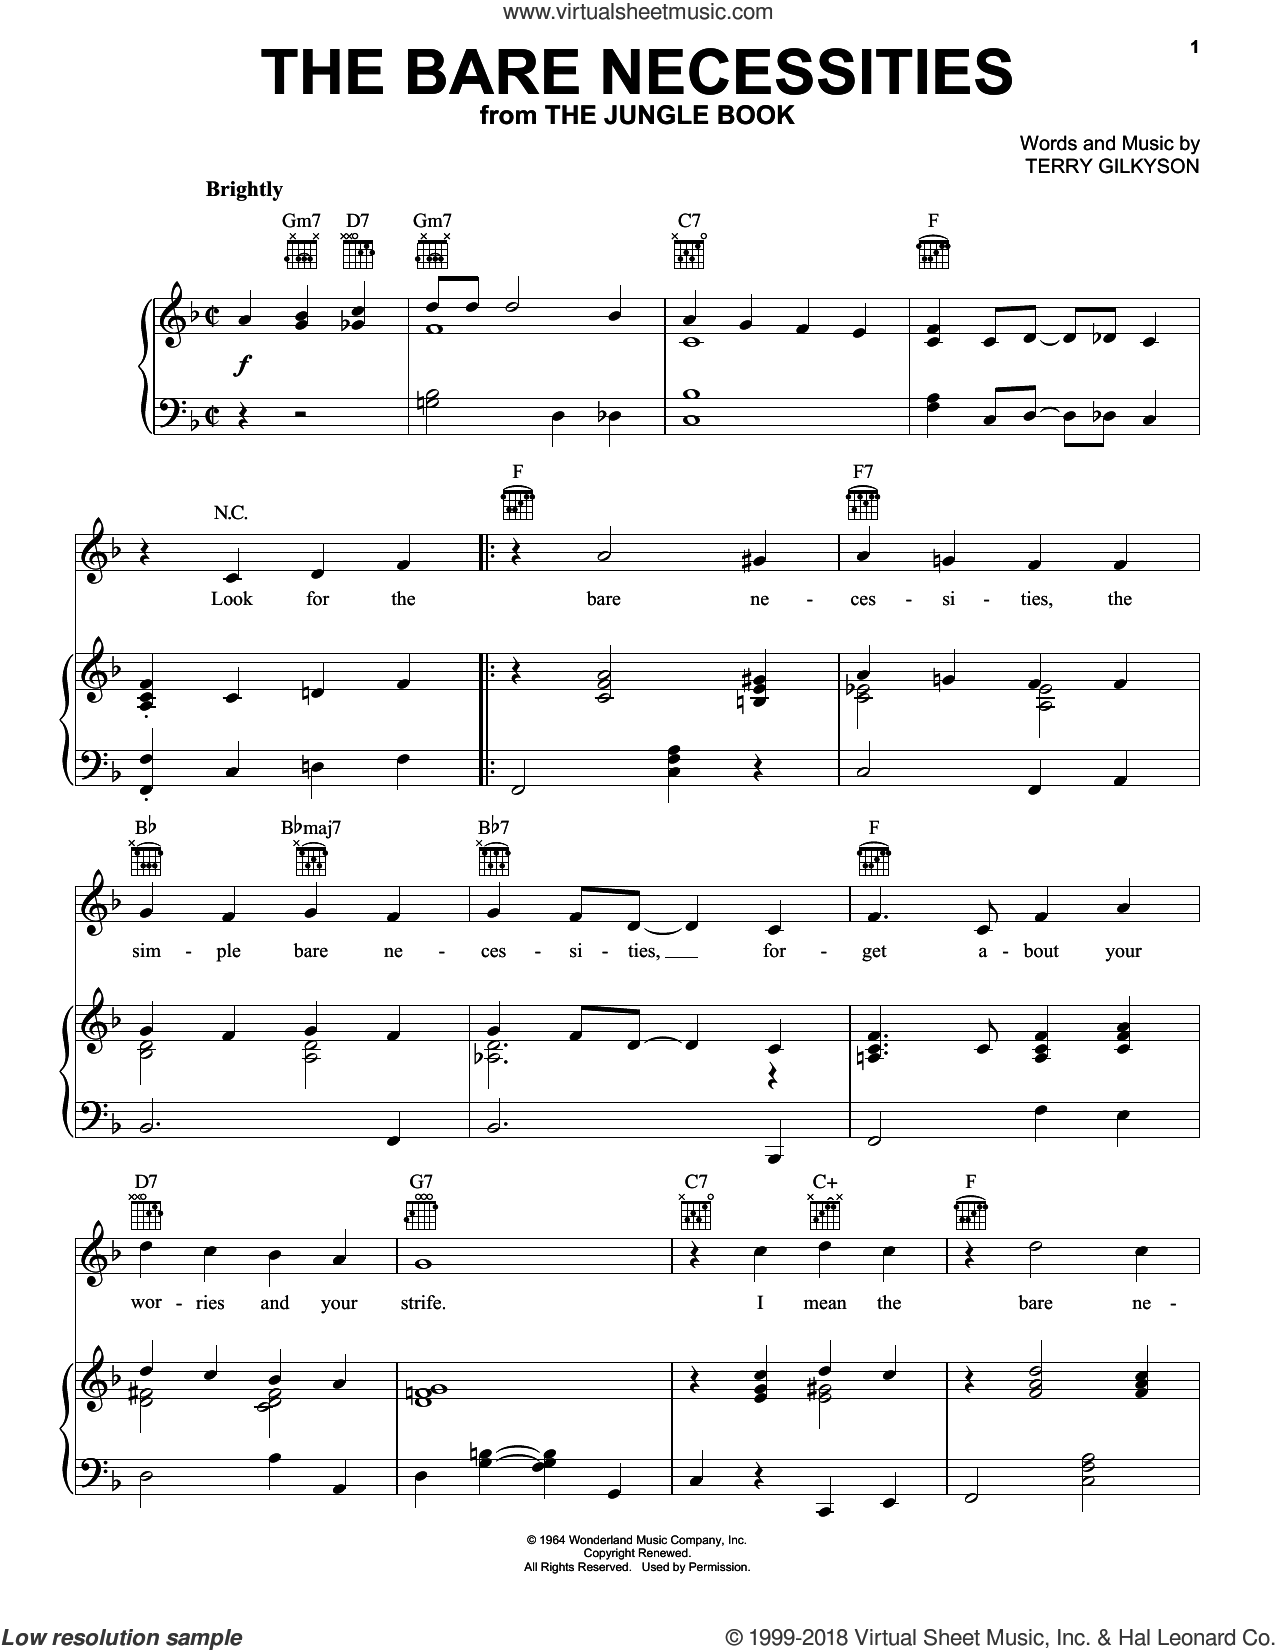 The Bare Necessities sheet music for voice, piano or guitar by Terry Gilkyson, intermediate skill level